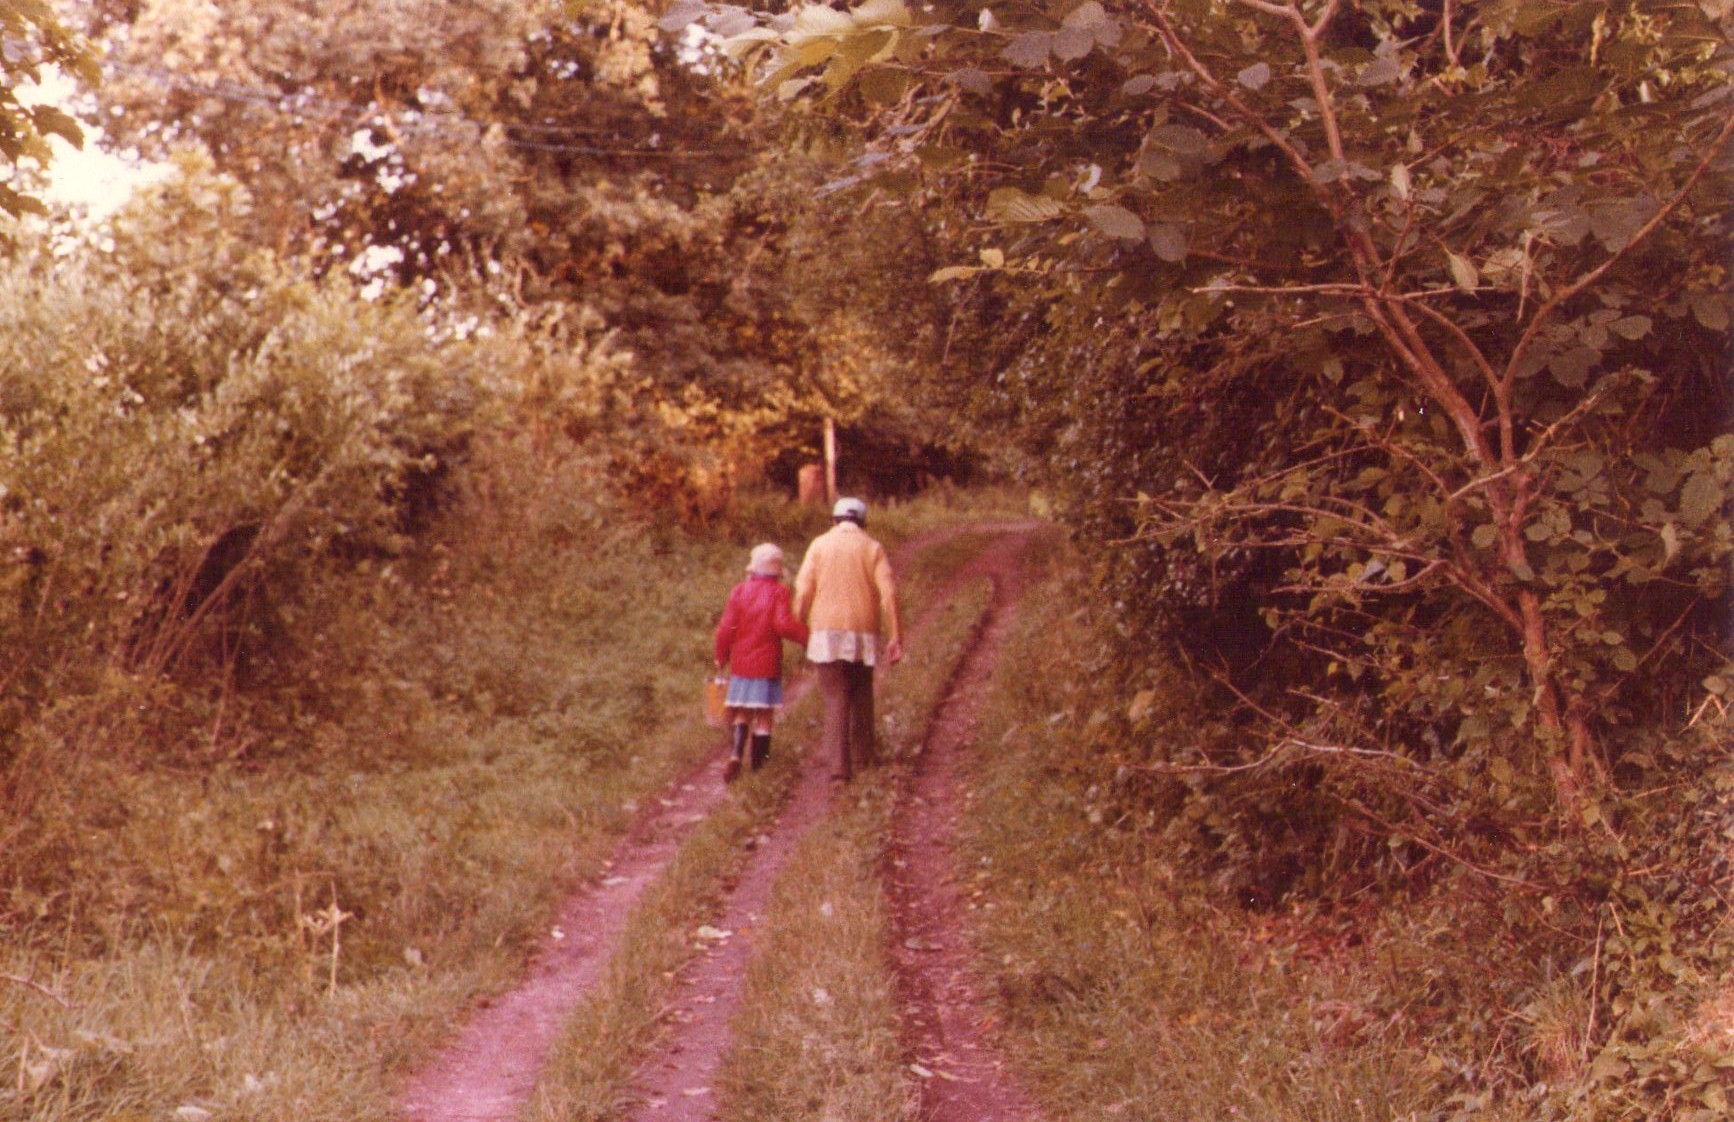 childhood time in the countryside